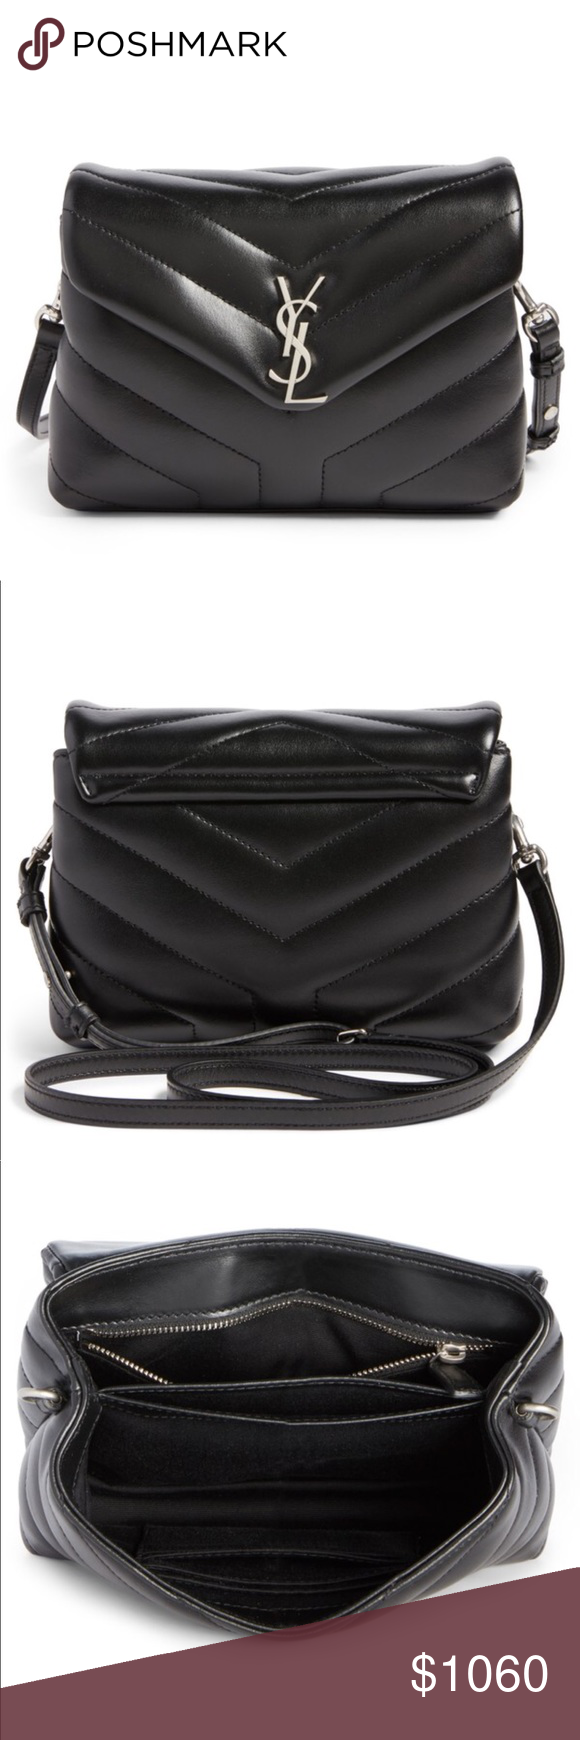 8a0bc1bef4ef YSL Toy LouLou Calfskin Leather Crossbody Bag No Trades Pls. Soft calfskin  leather with w